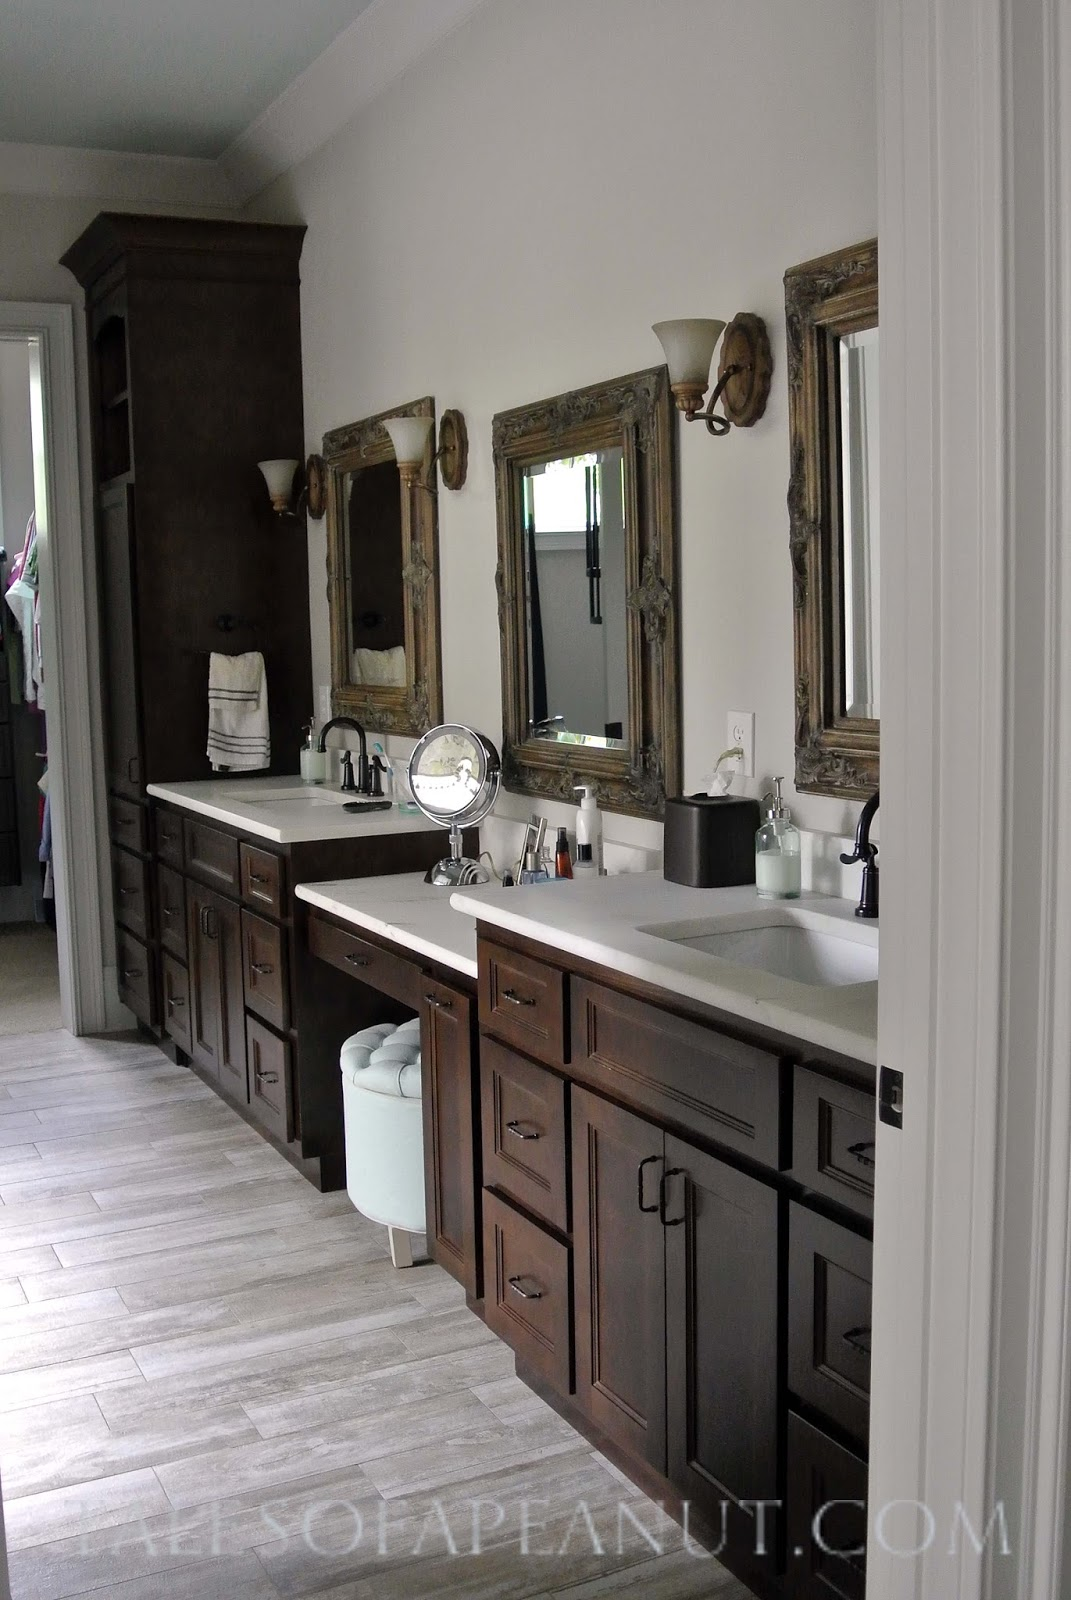 Building a home master bathroom reveal jenn elwell for Master bathroom cabinet designs